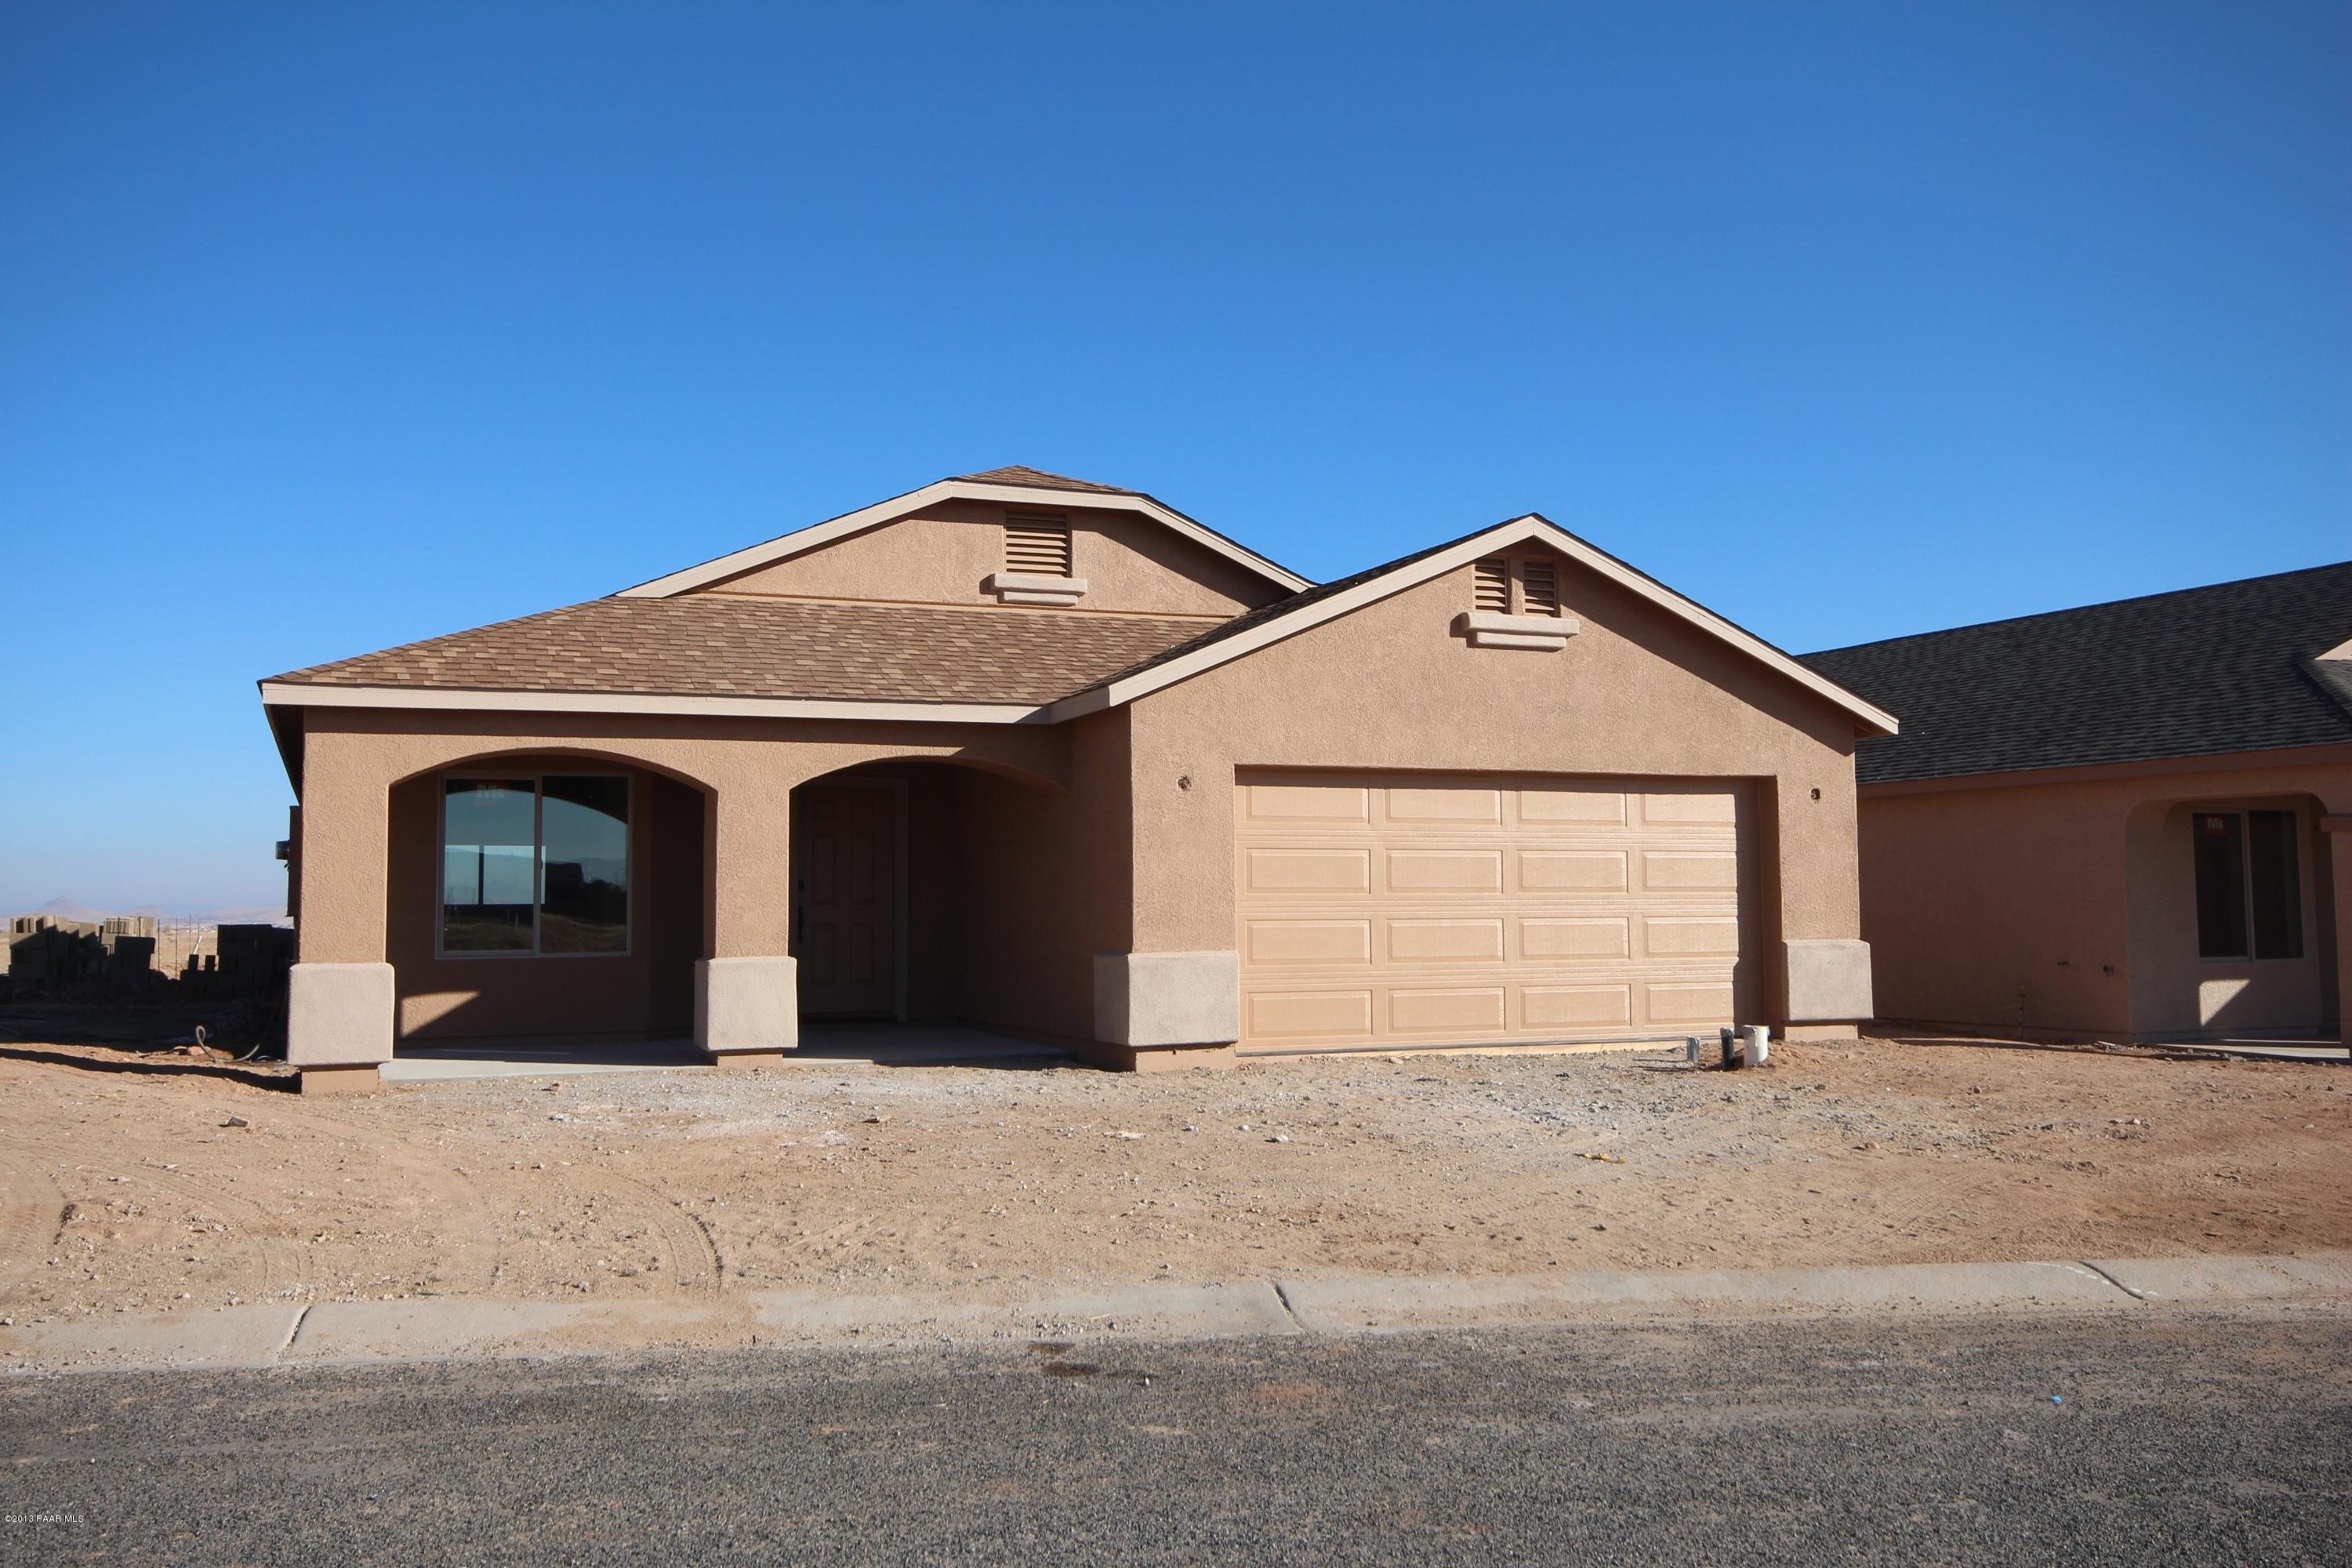 7450 E Green Vista, Prescott Valley, AZ 86315